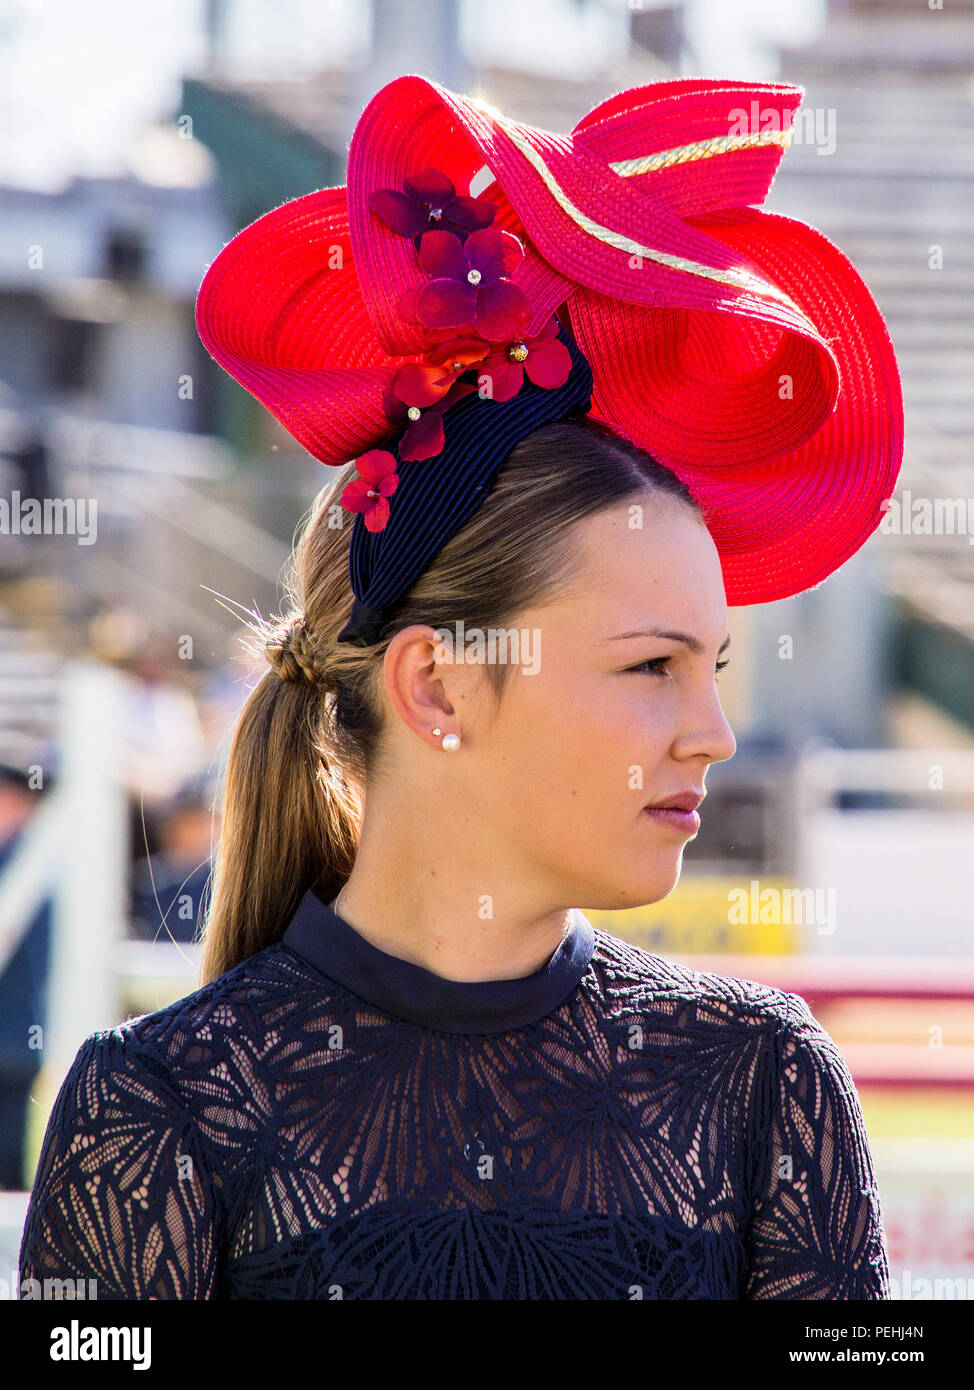 Ladies Day at Ekka Agricultural show Brisbane - Stock Image